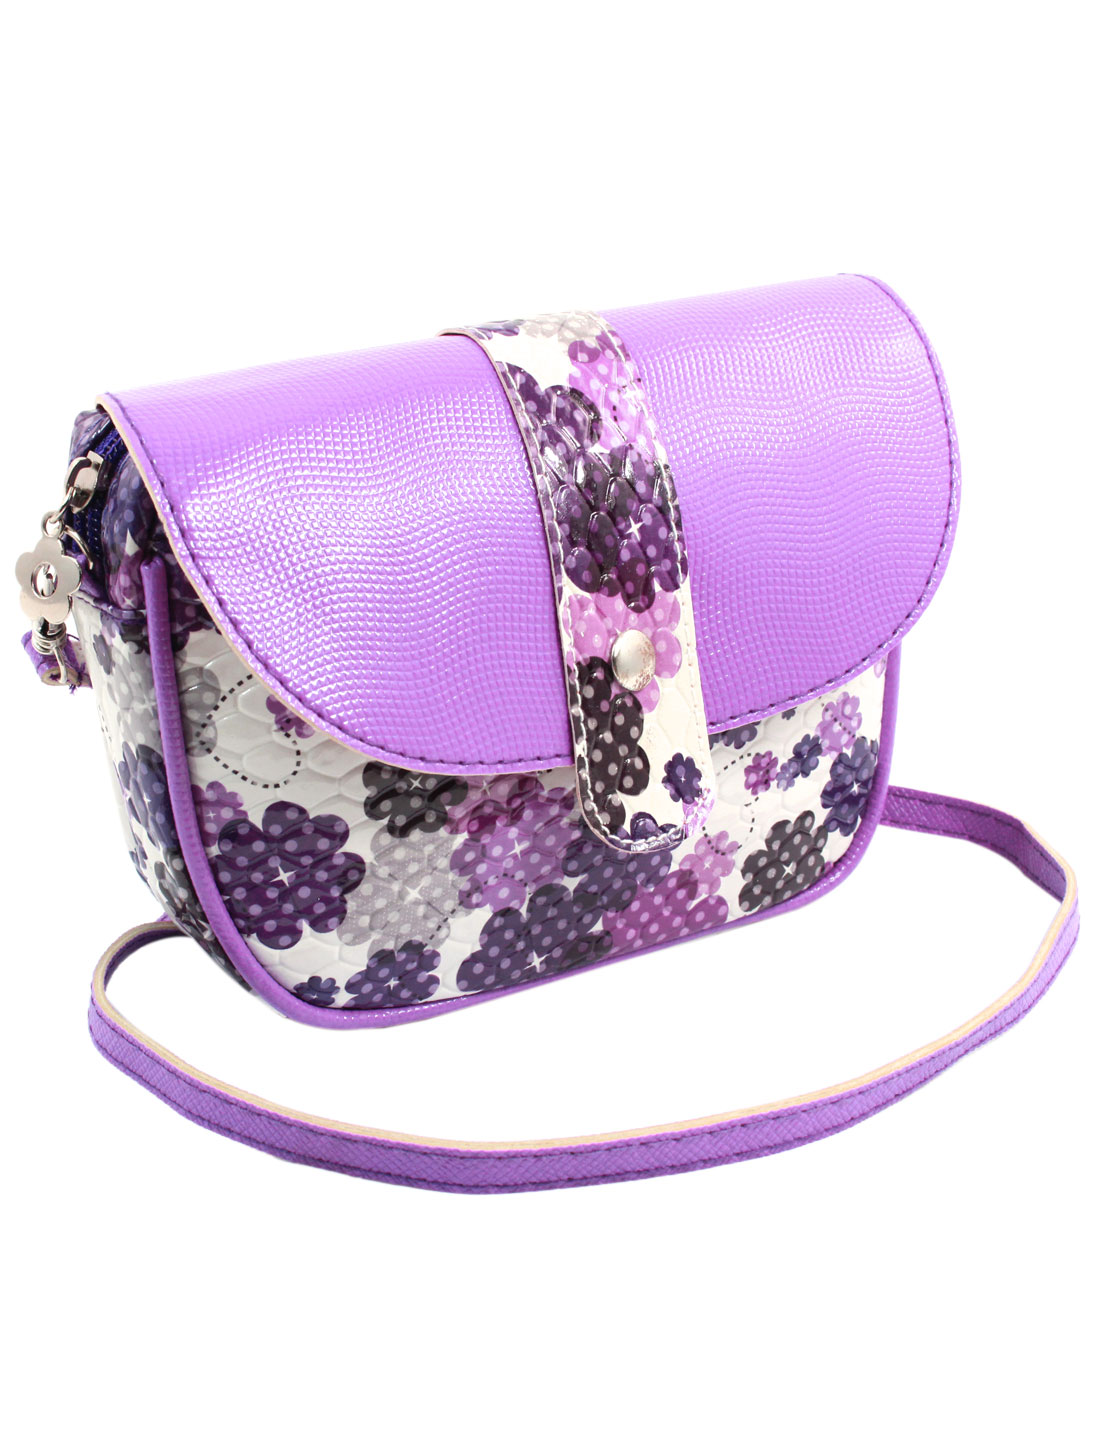 Woman 2 Pockets Magnet Button Zipper Closure Flower Print Faux Leather Wallet Purse Bag Purple White w Strap